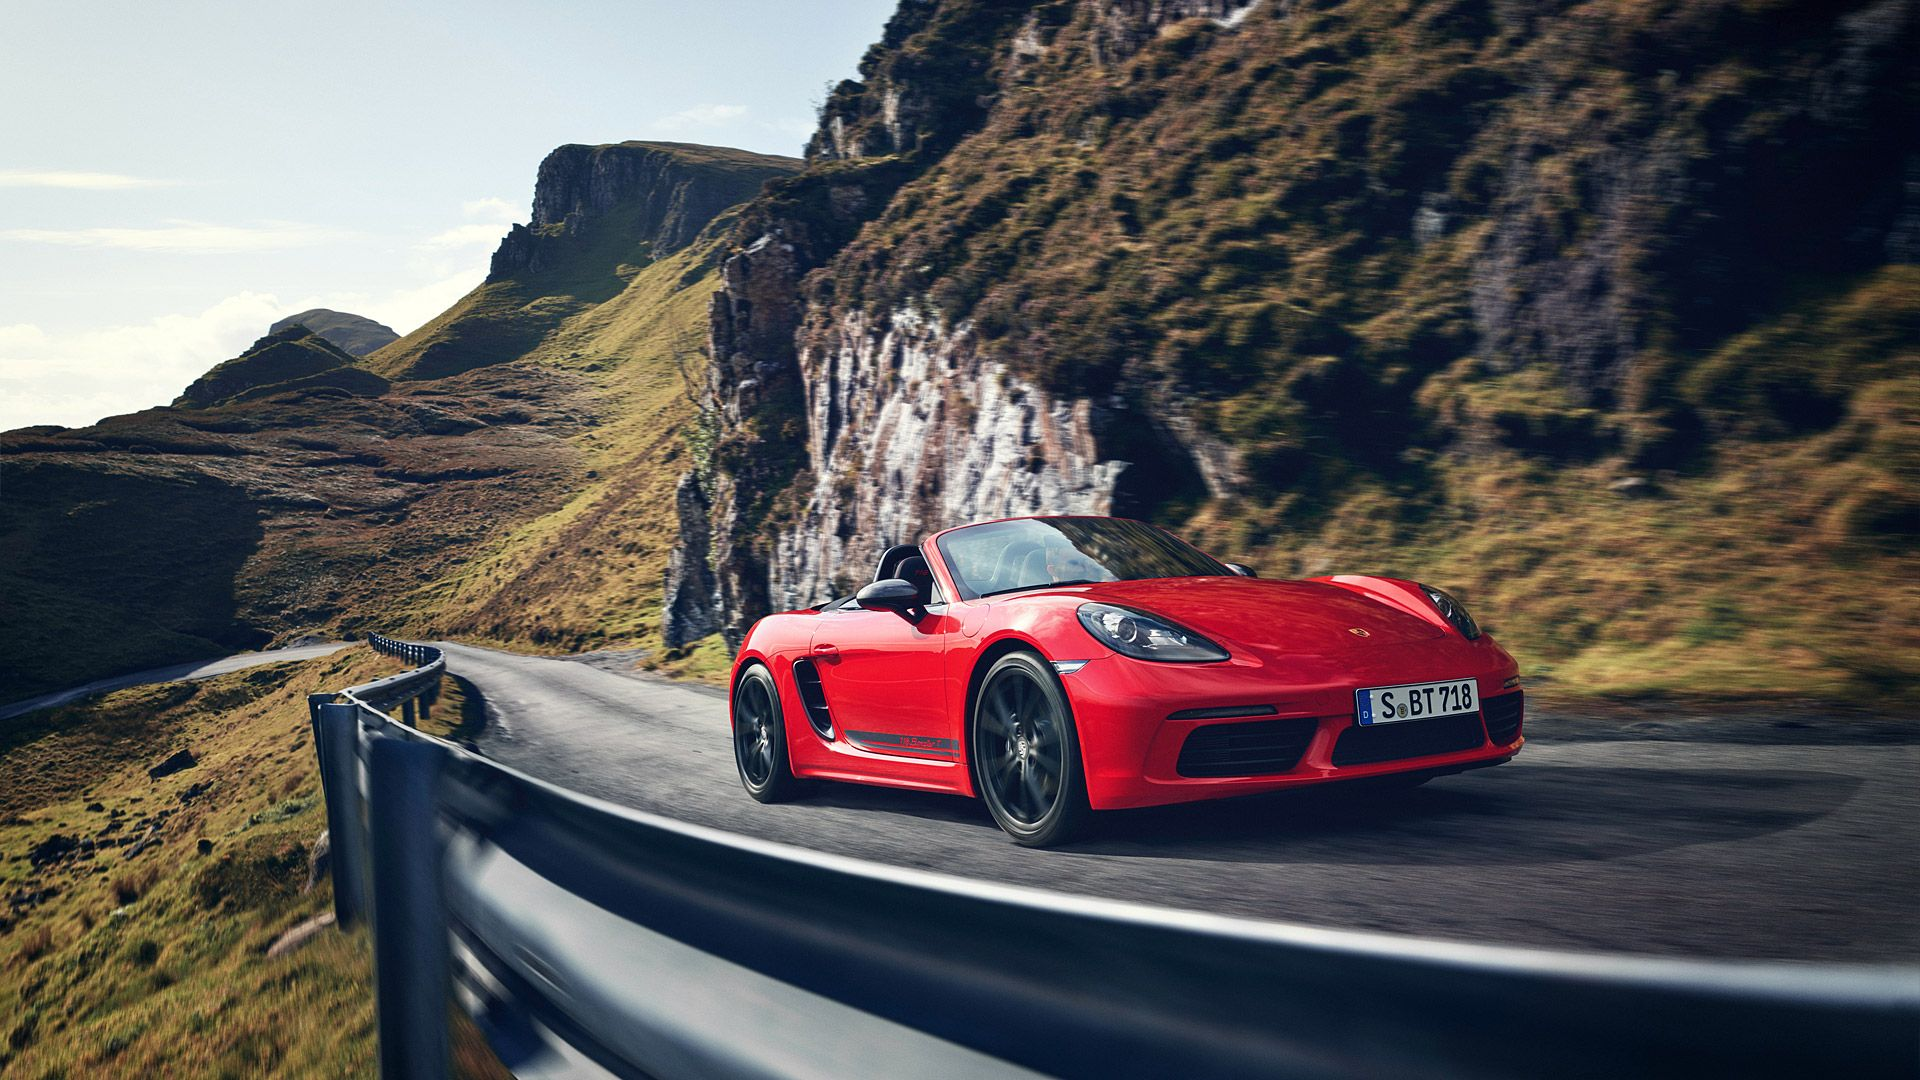 2019 Porsche 718 Boxster T Wallpapers Wsupercars Porsche Convertible Porsche 718 Boxster Porsche 718 Cayman